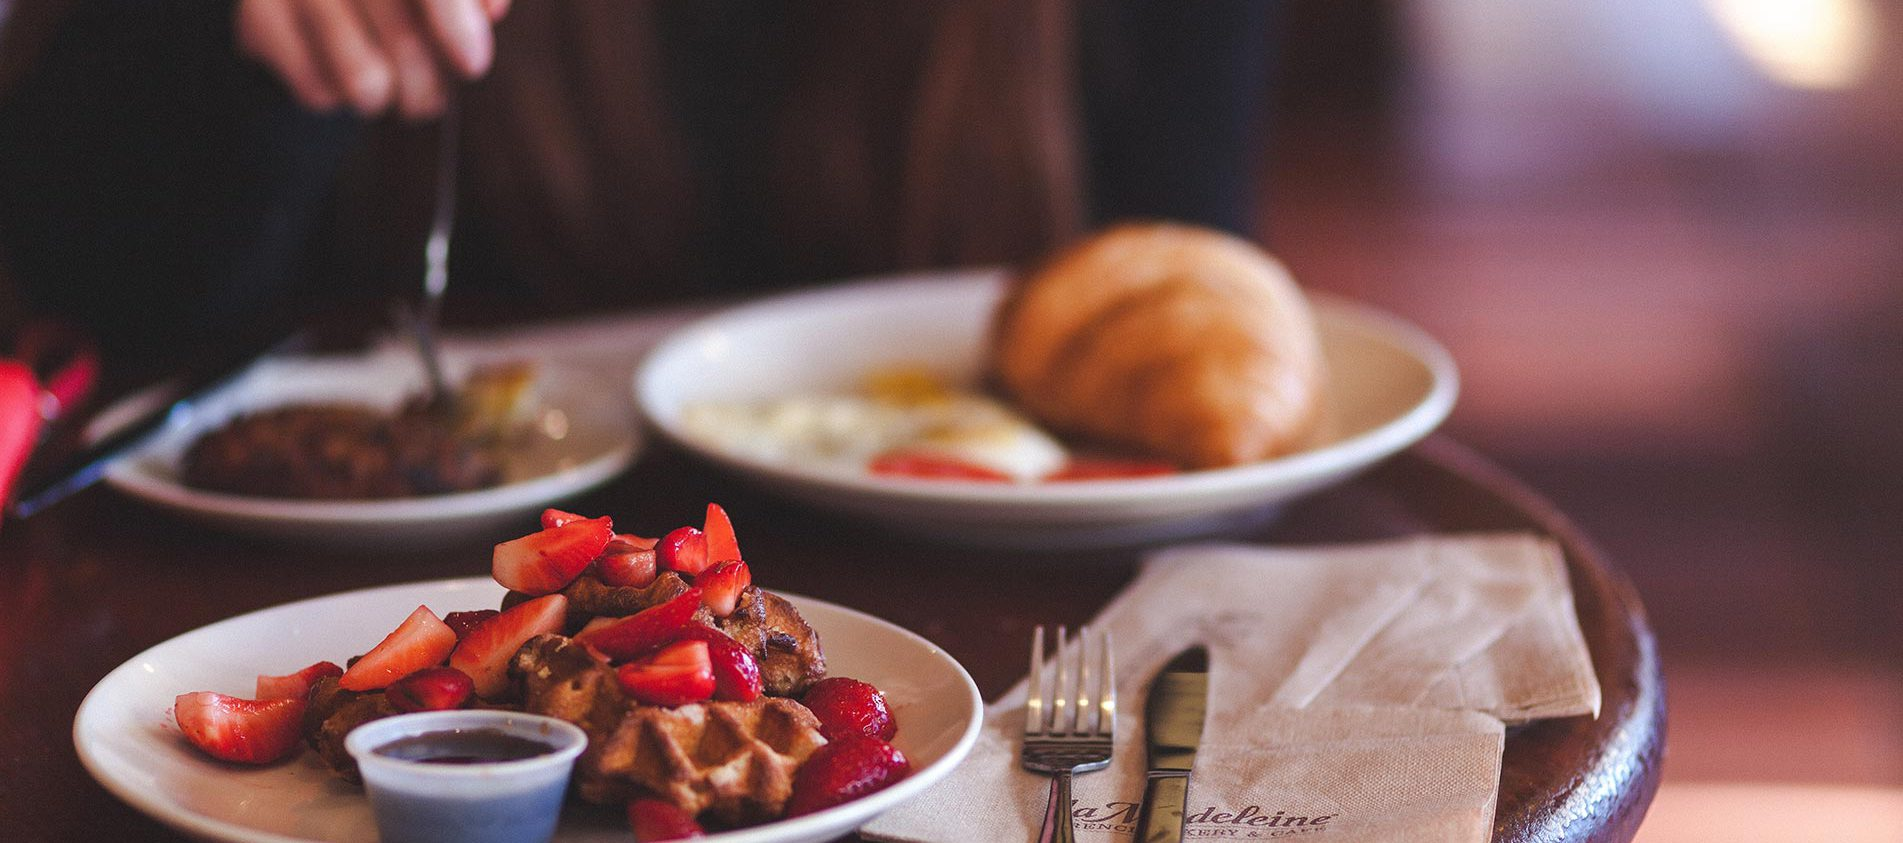 Table with berry waffle, croissant and blurred hand of someone using a fork